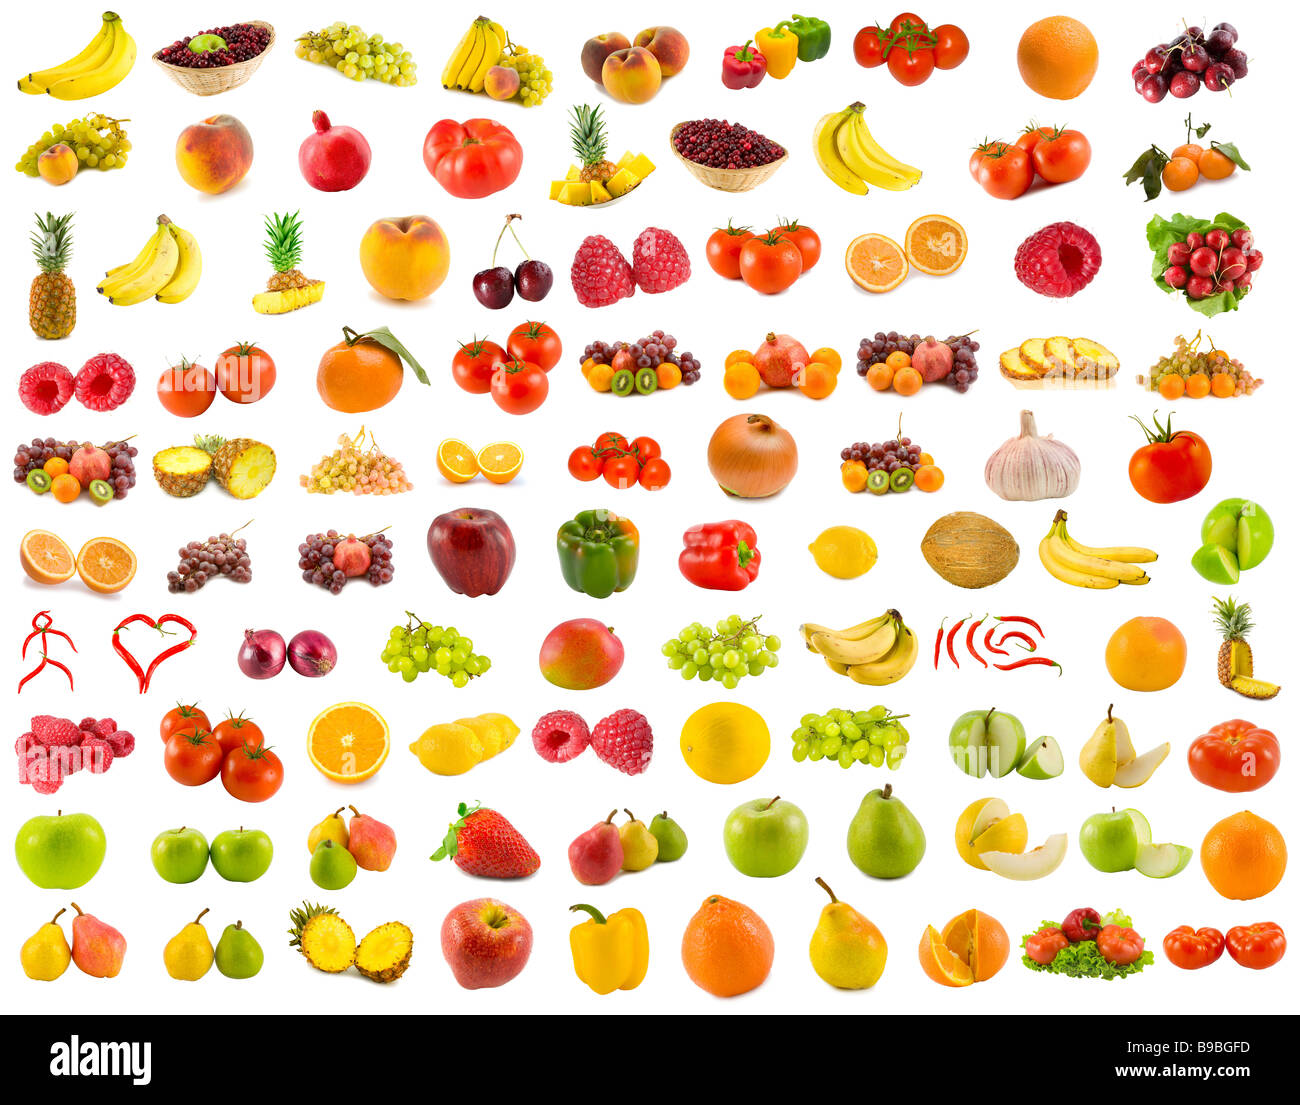 set from 96 various fruits vegetables and berries - Stock Image